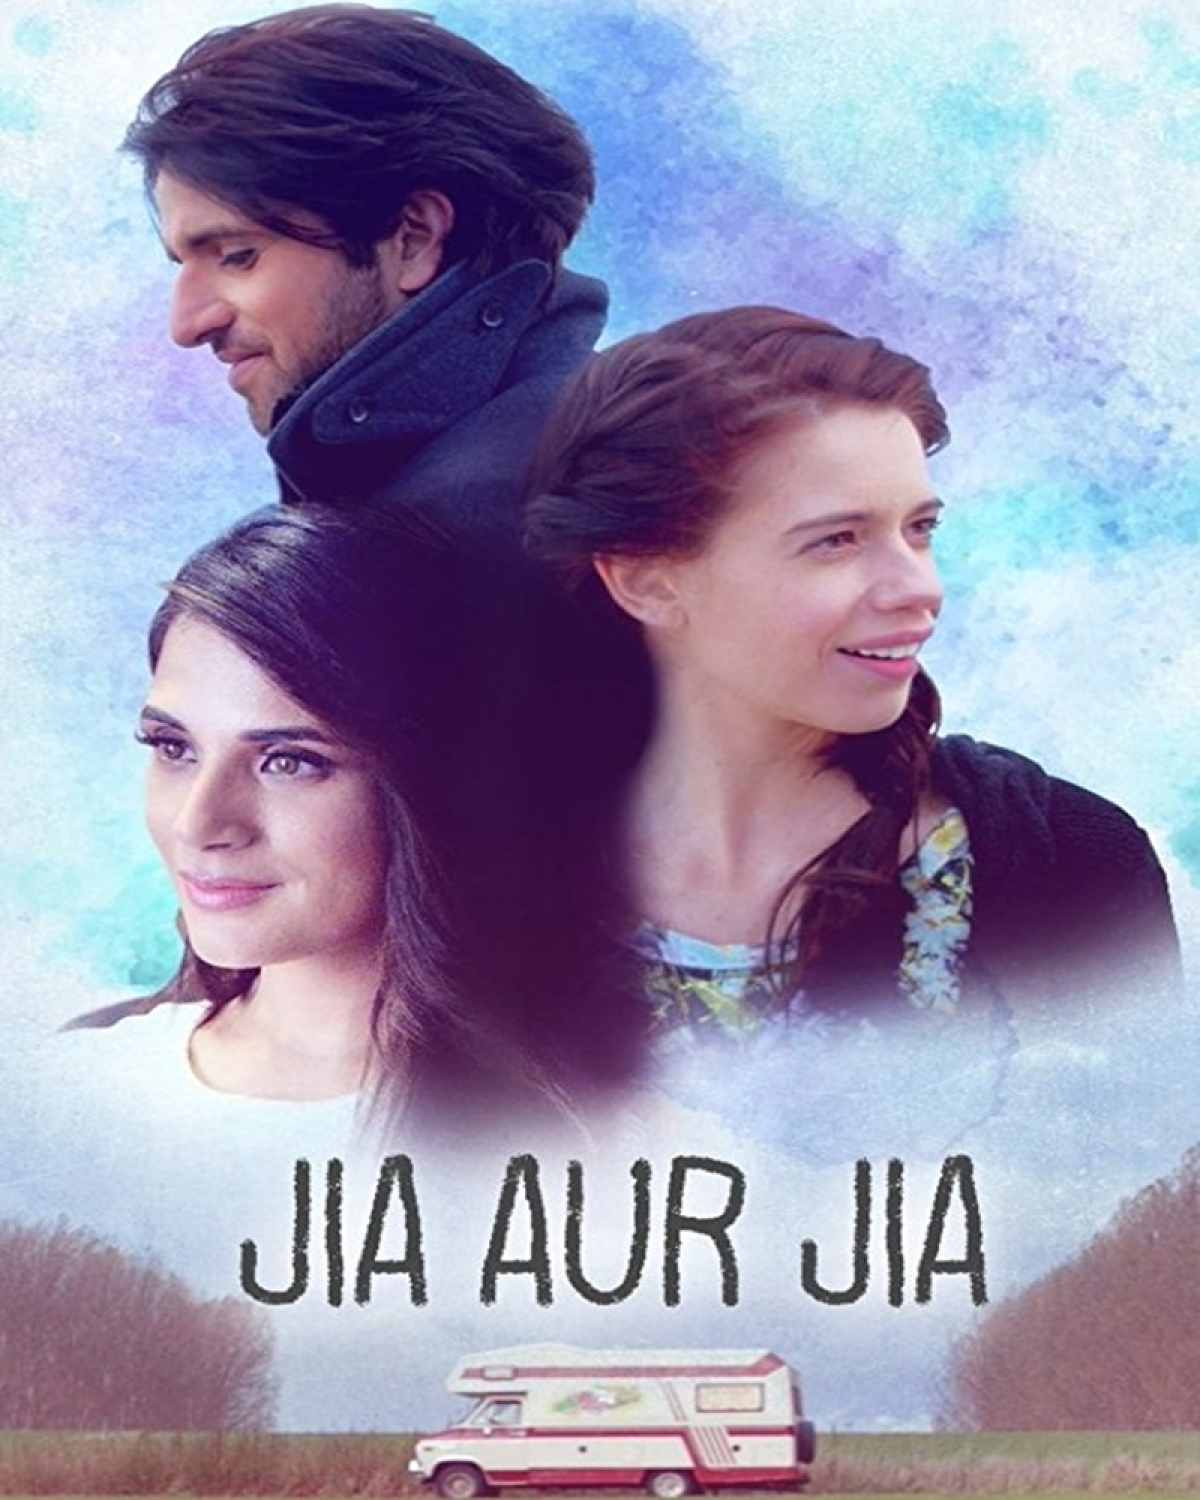 Movie Review: 'Jia Aur Jia': Old-fashioned but effective